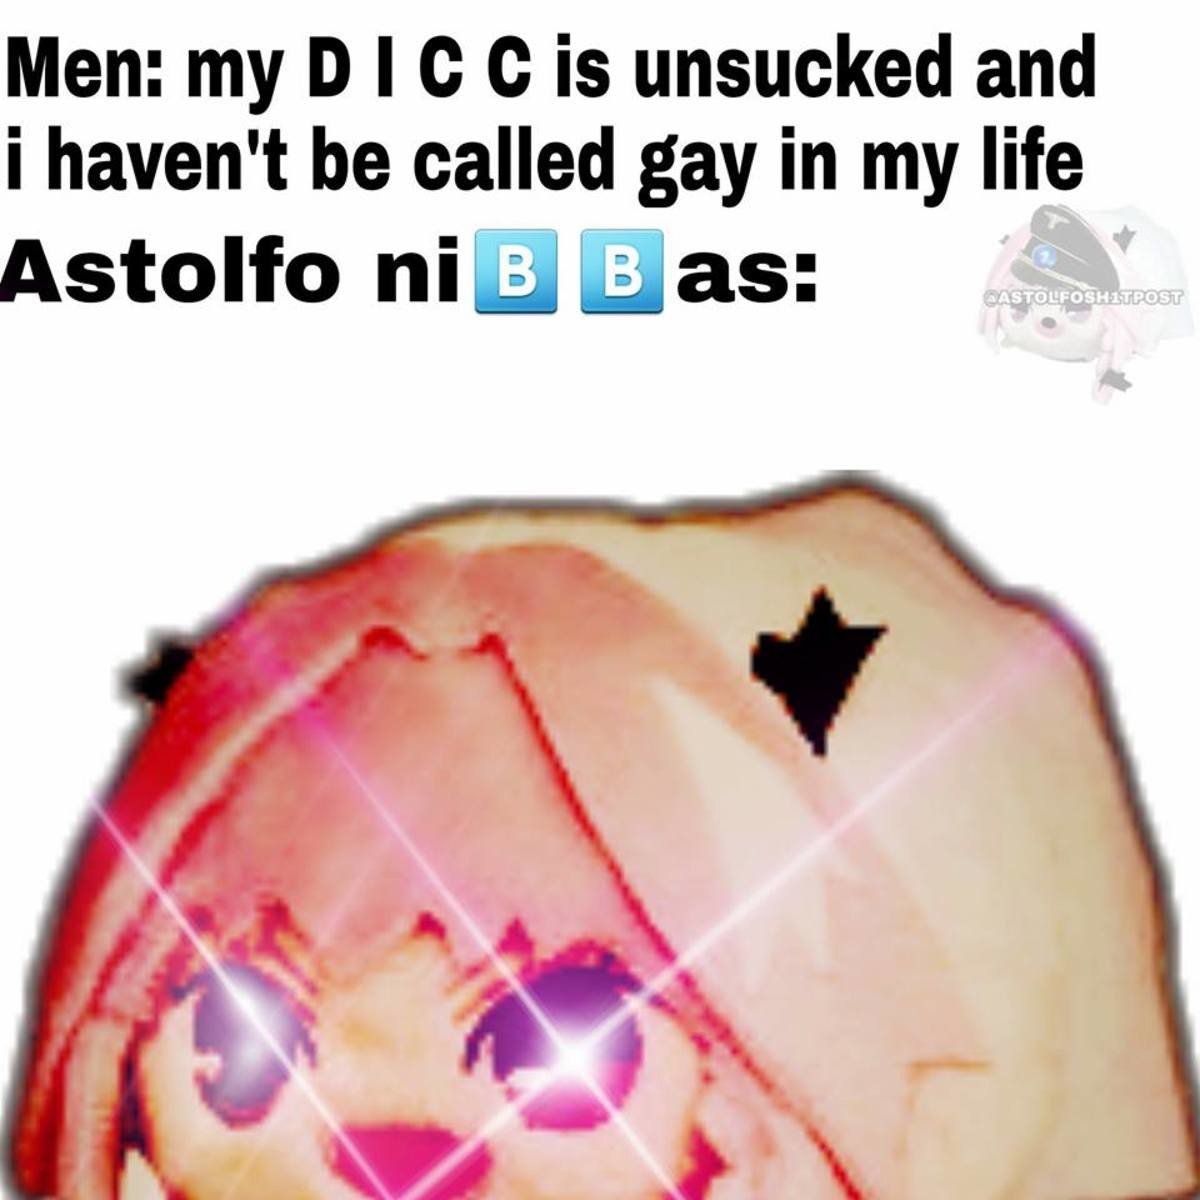 U Gey. . Men: my D I c c is unfucked and i haven' t be called gay in my life Astana , s""